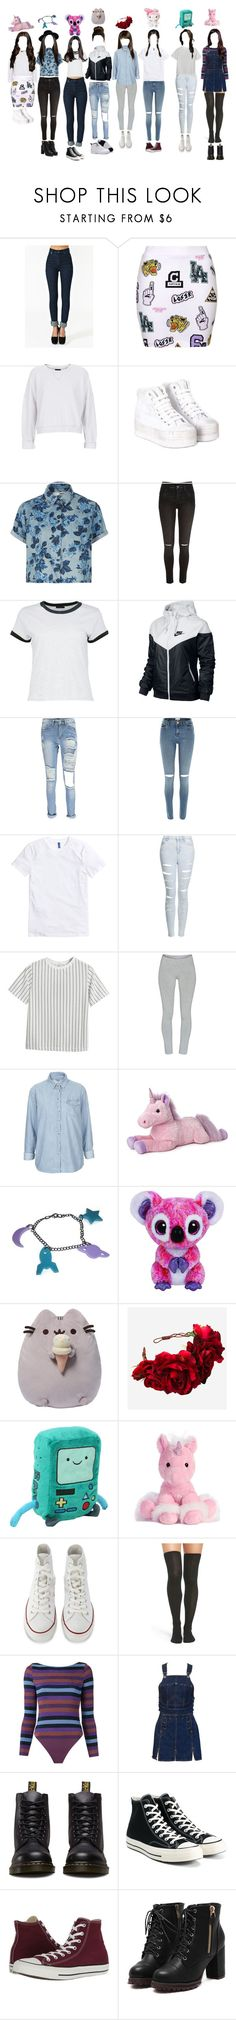 """1st Fan Meet in Seoul (Read D)"" by thedolls-official ❤ liked on Polyvore featuring Illustrated People, Topshop, Jeffrey Campbell, River Island, Boohoo, NIKE, Chicnova Fashion, TNA, Gund and Rock 'N Rose"